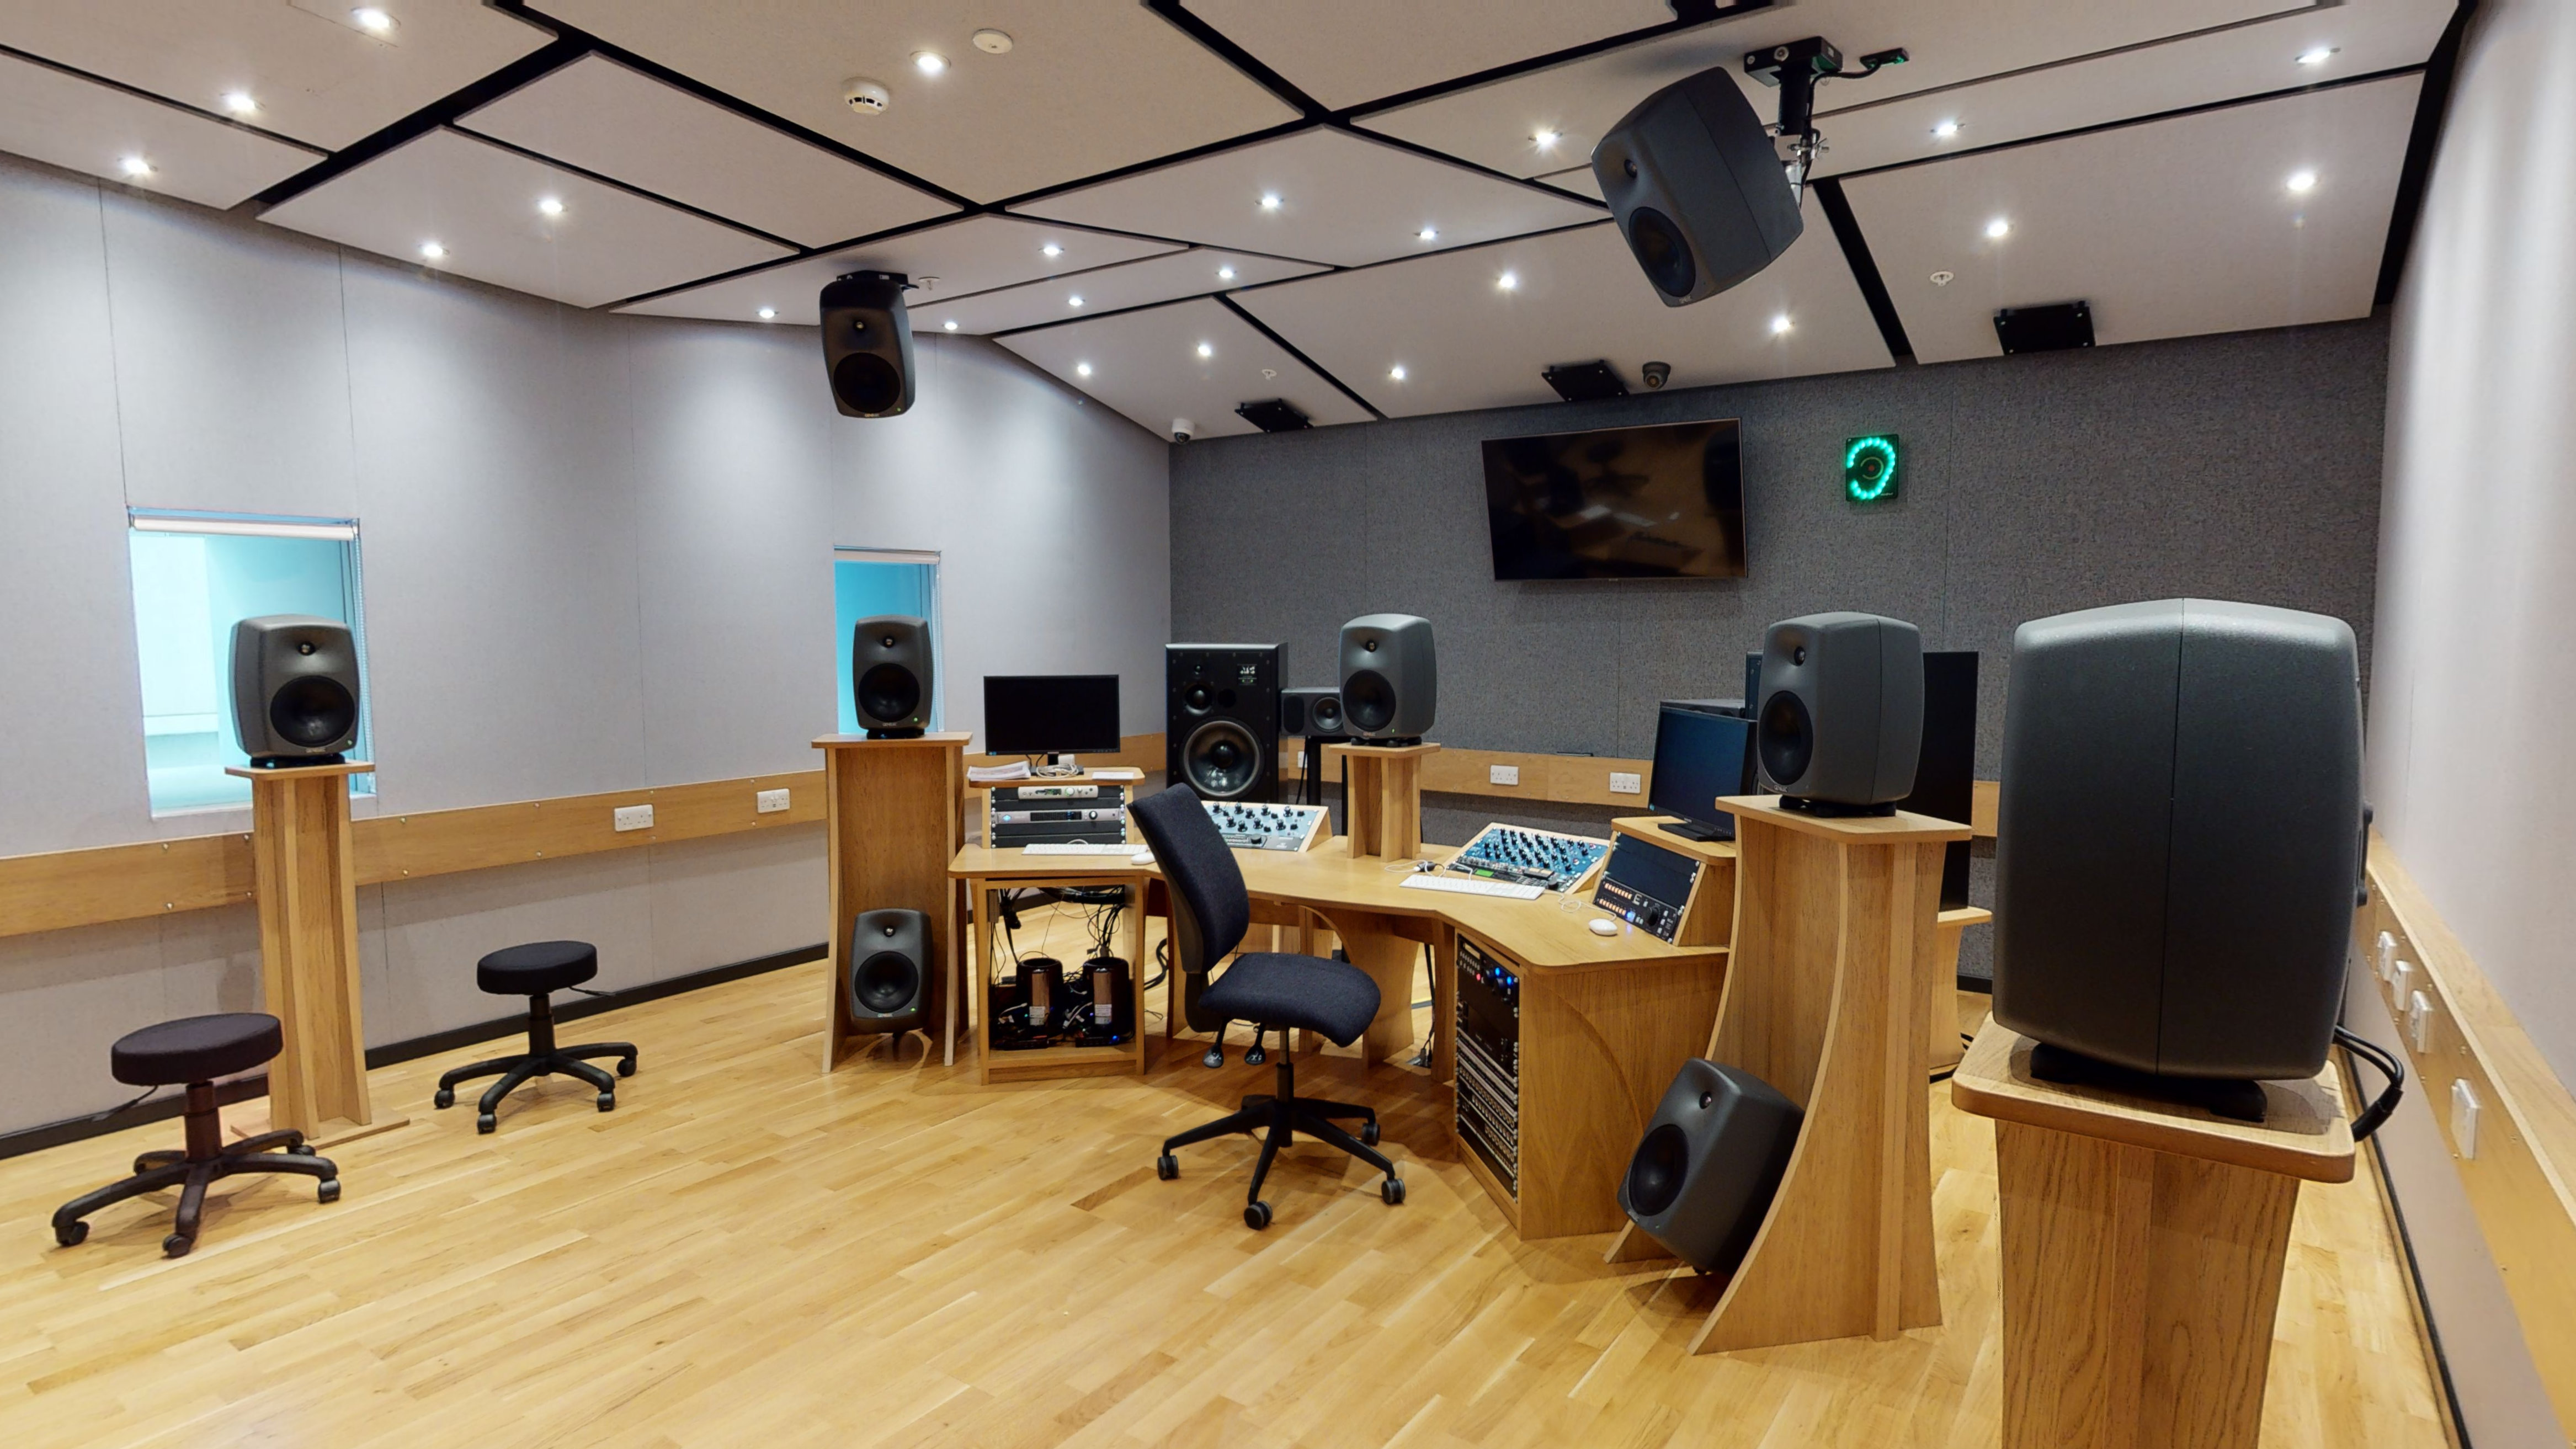 Central control desk in the centre of a music studio style space - surrounded by a circle of head height speakers.